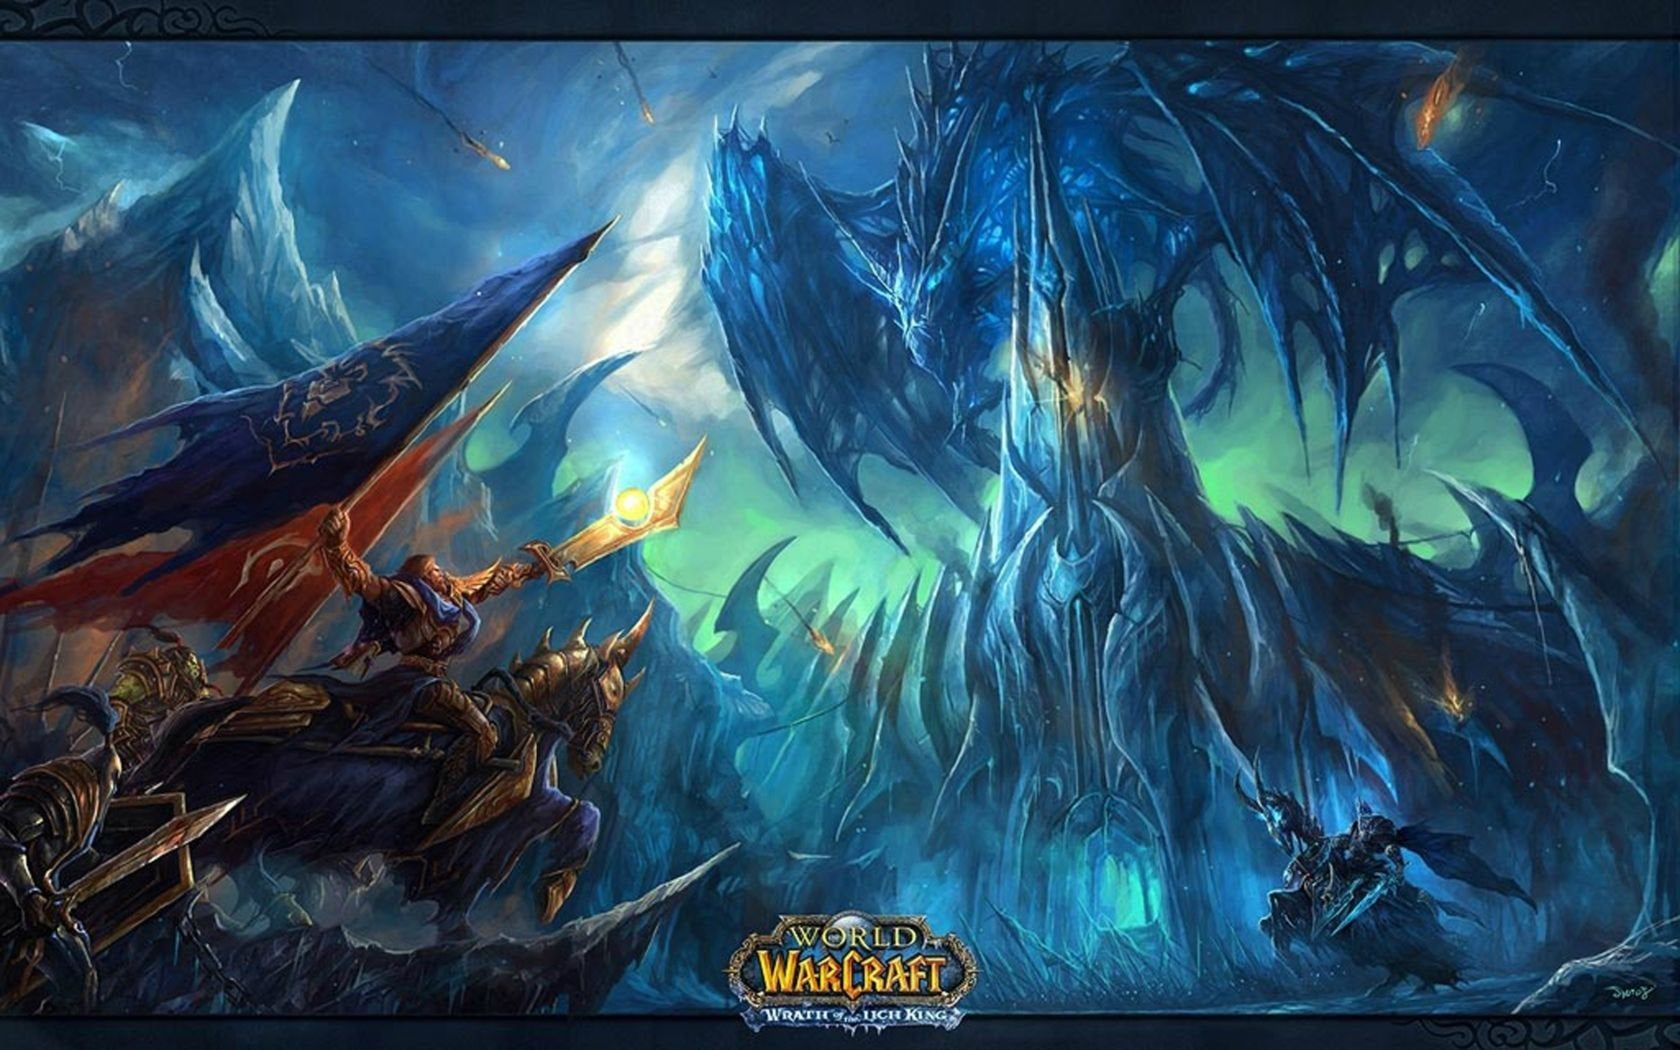 World Of Warcraft Wallpapers Top Free World Of Warcraft